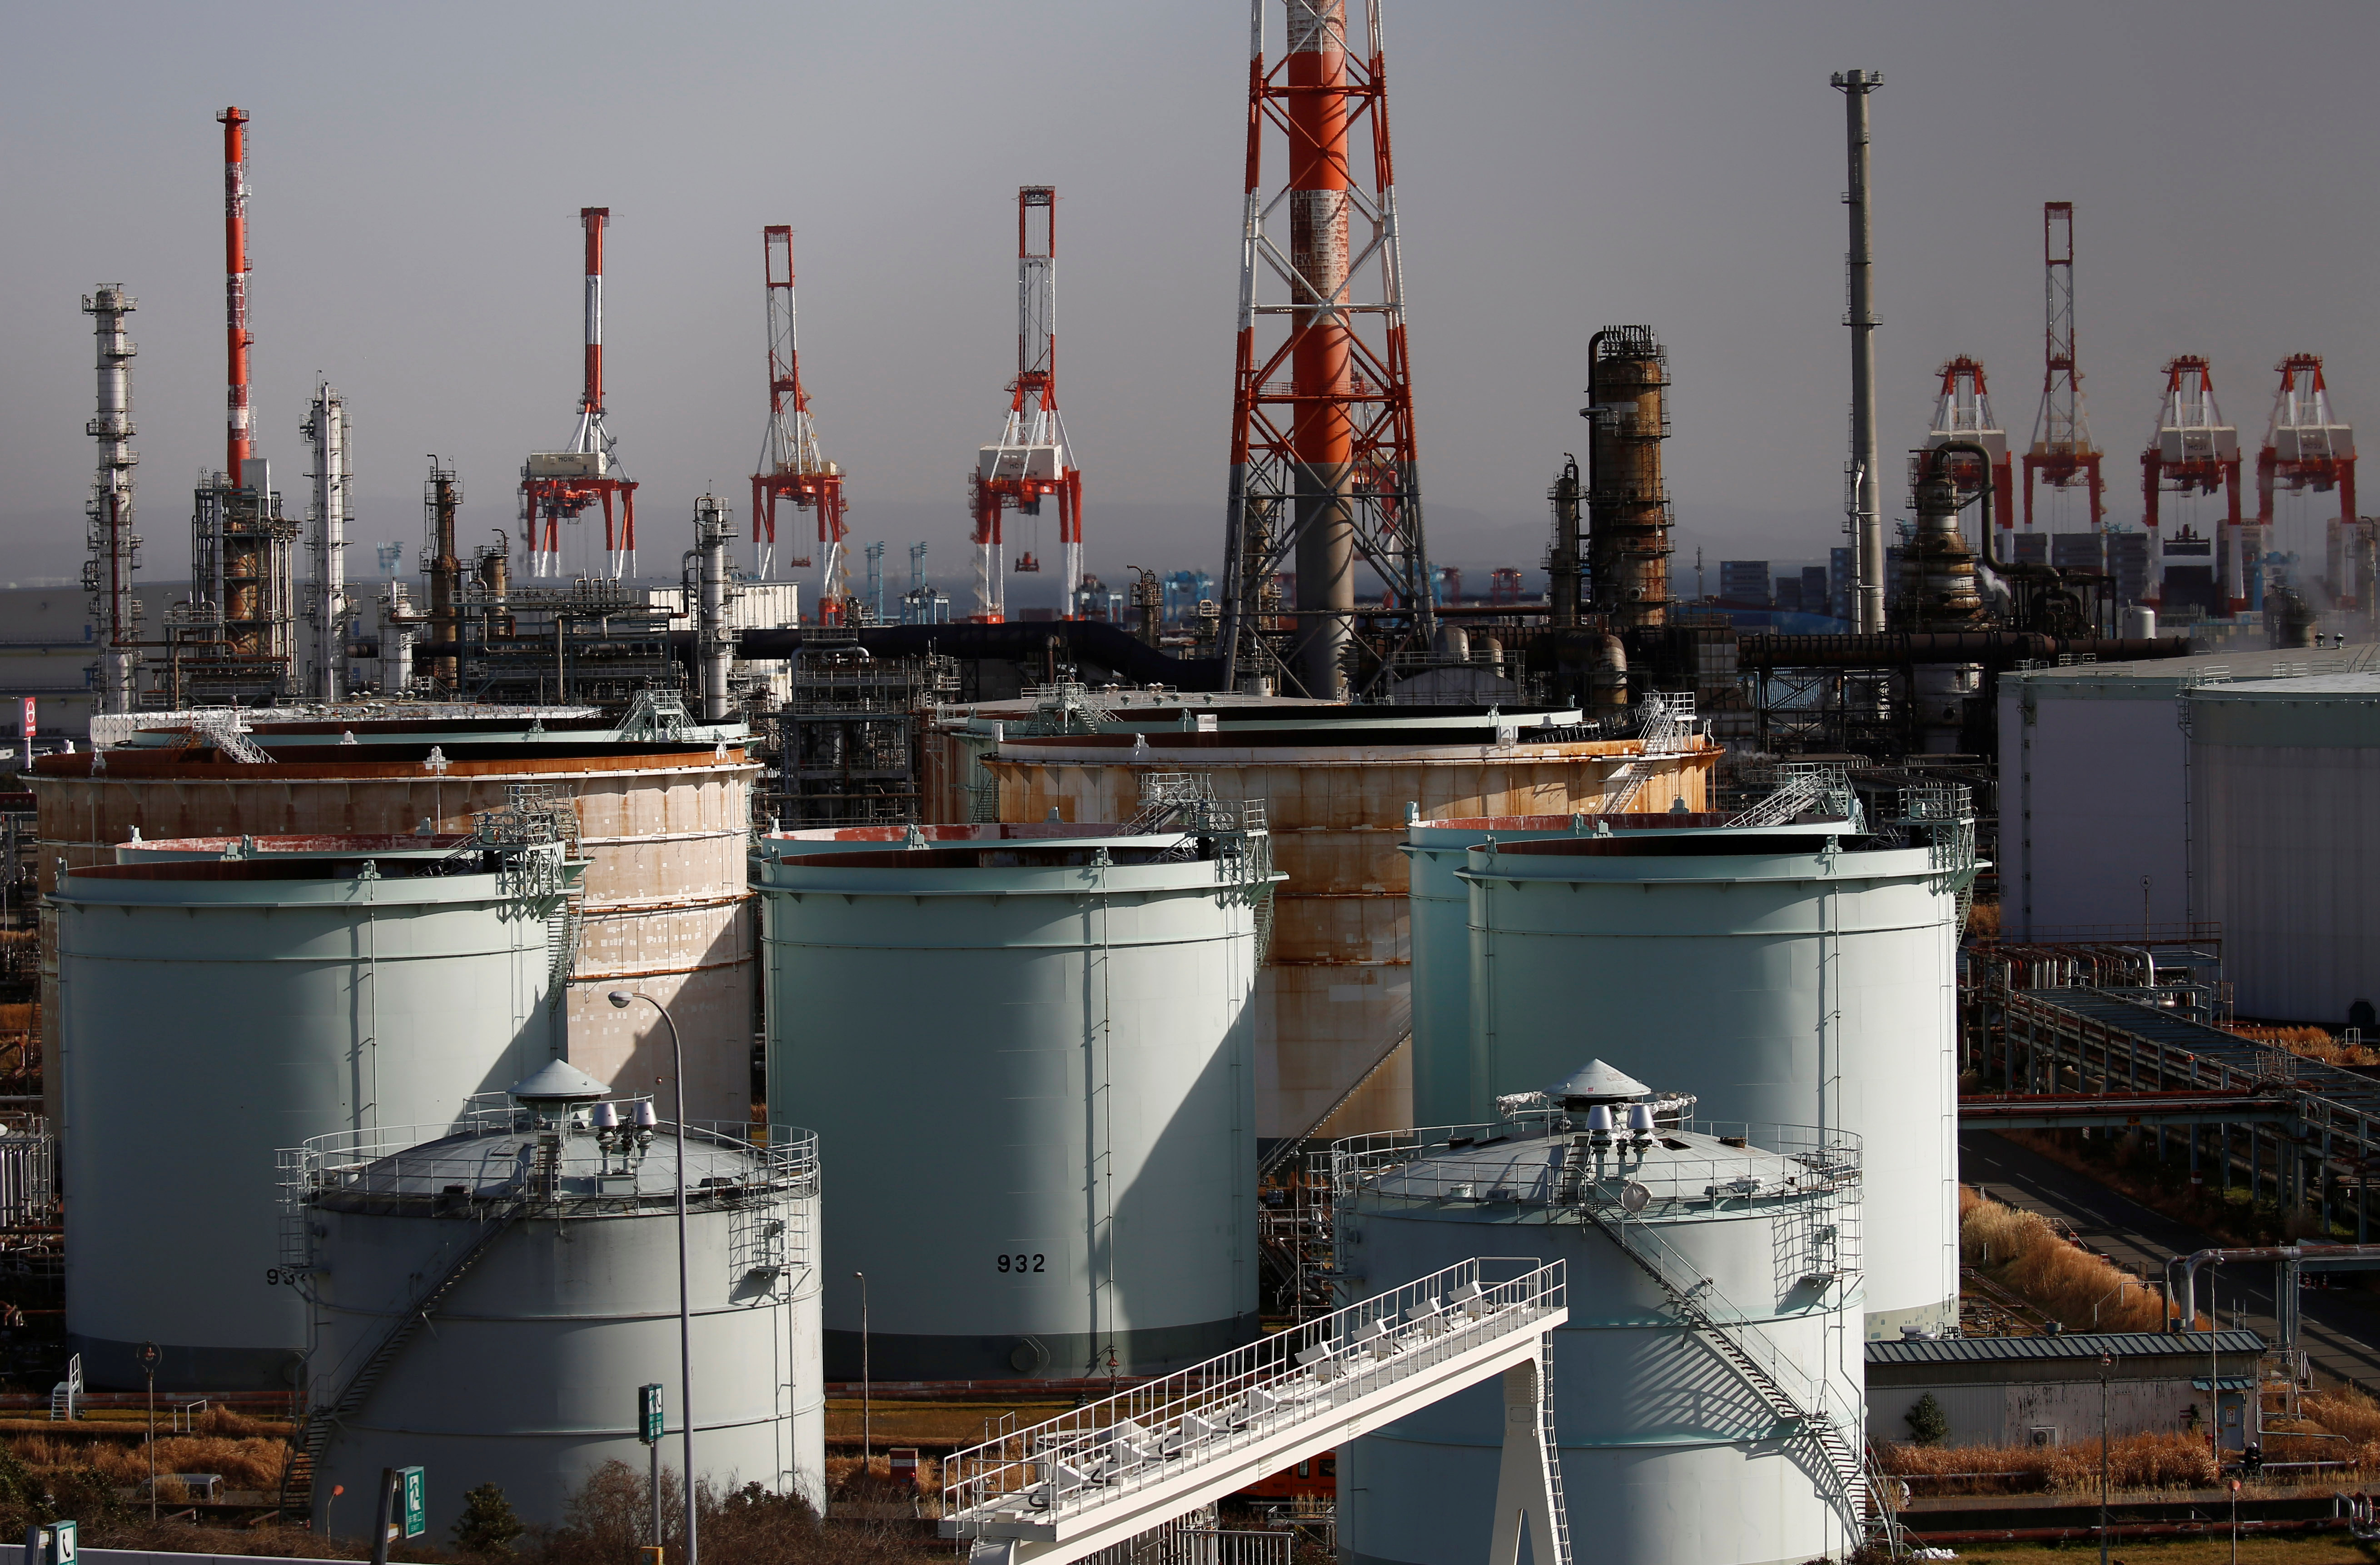 JX Nippon Oil & Energy Corp's refinery is pictured in Yokohama, Japan February 7, 2017. REUTERS/Kim Kyung-Hoon